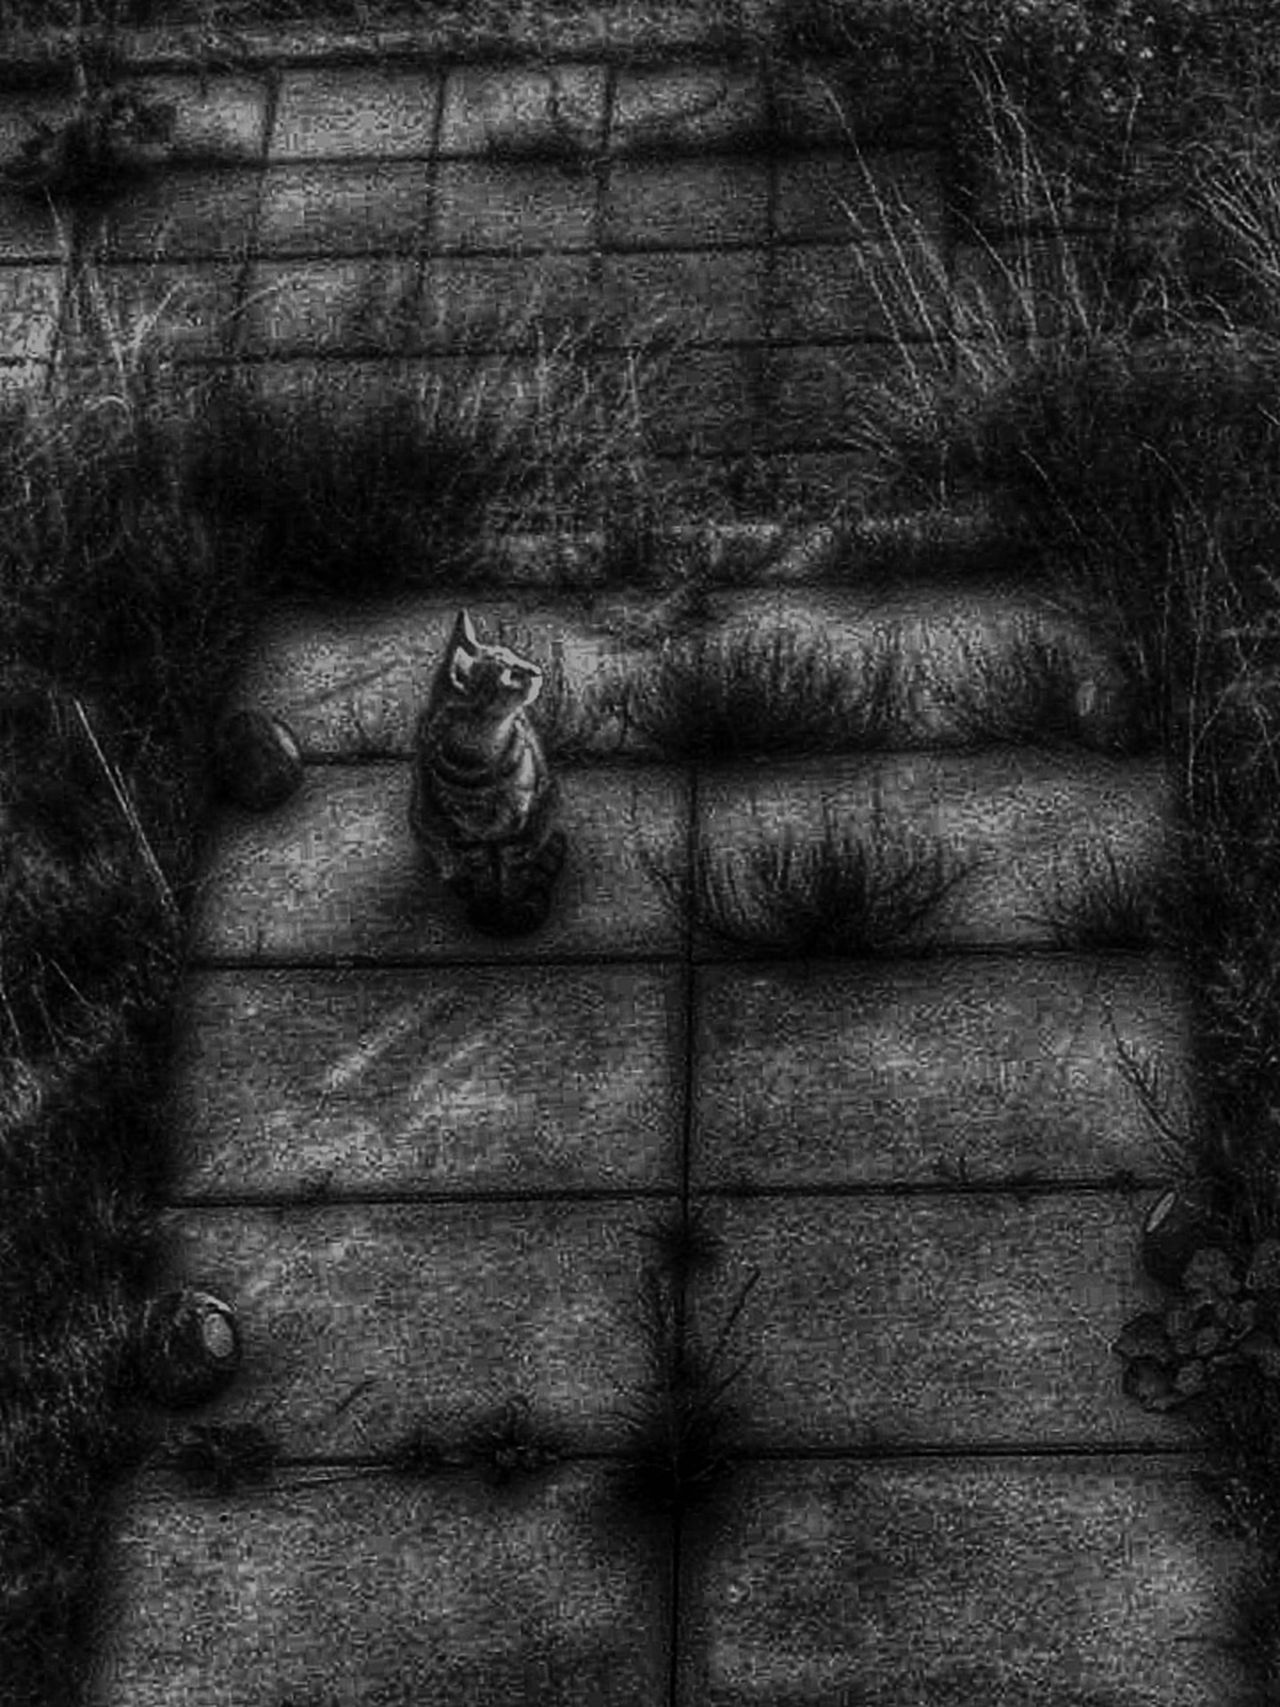 Pussycat Pusspuss Blackandwhite Photography Blackandwhite Garden Animals Animal_collection The Week Of Eyeem This Week On Eyeem